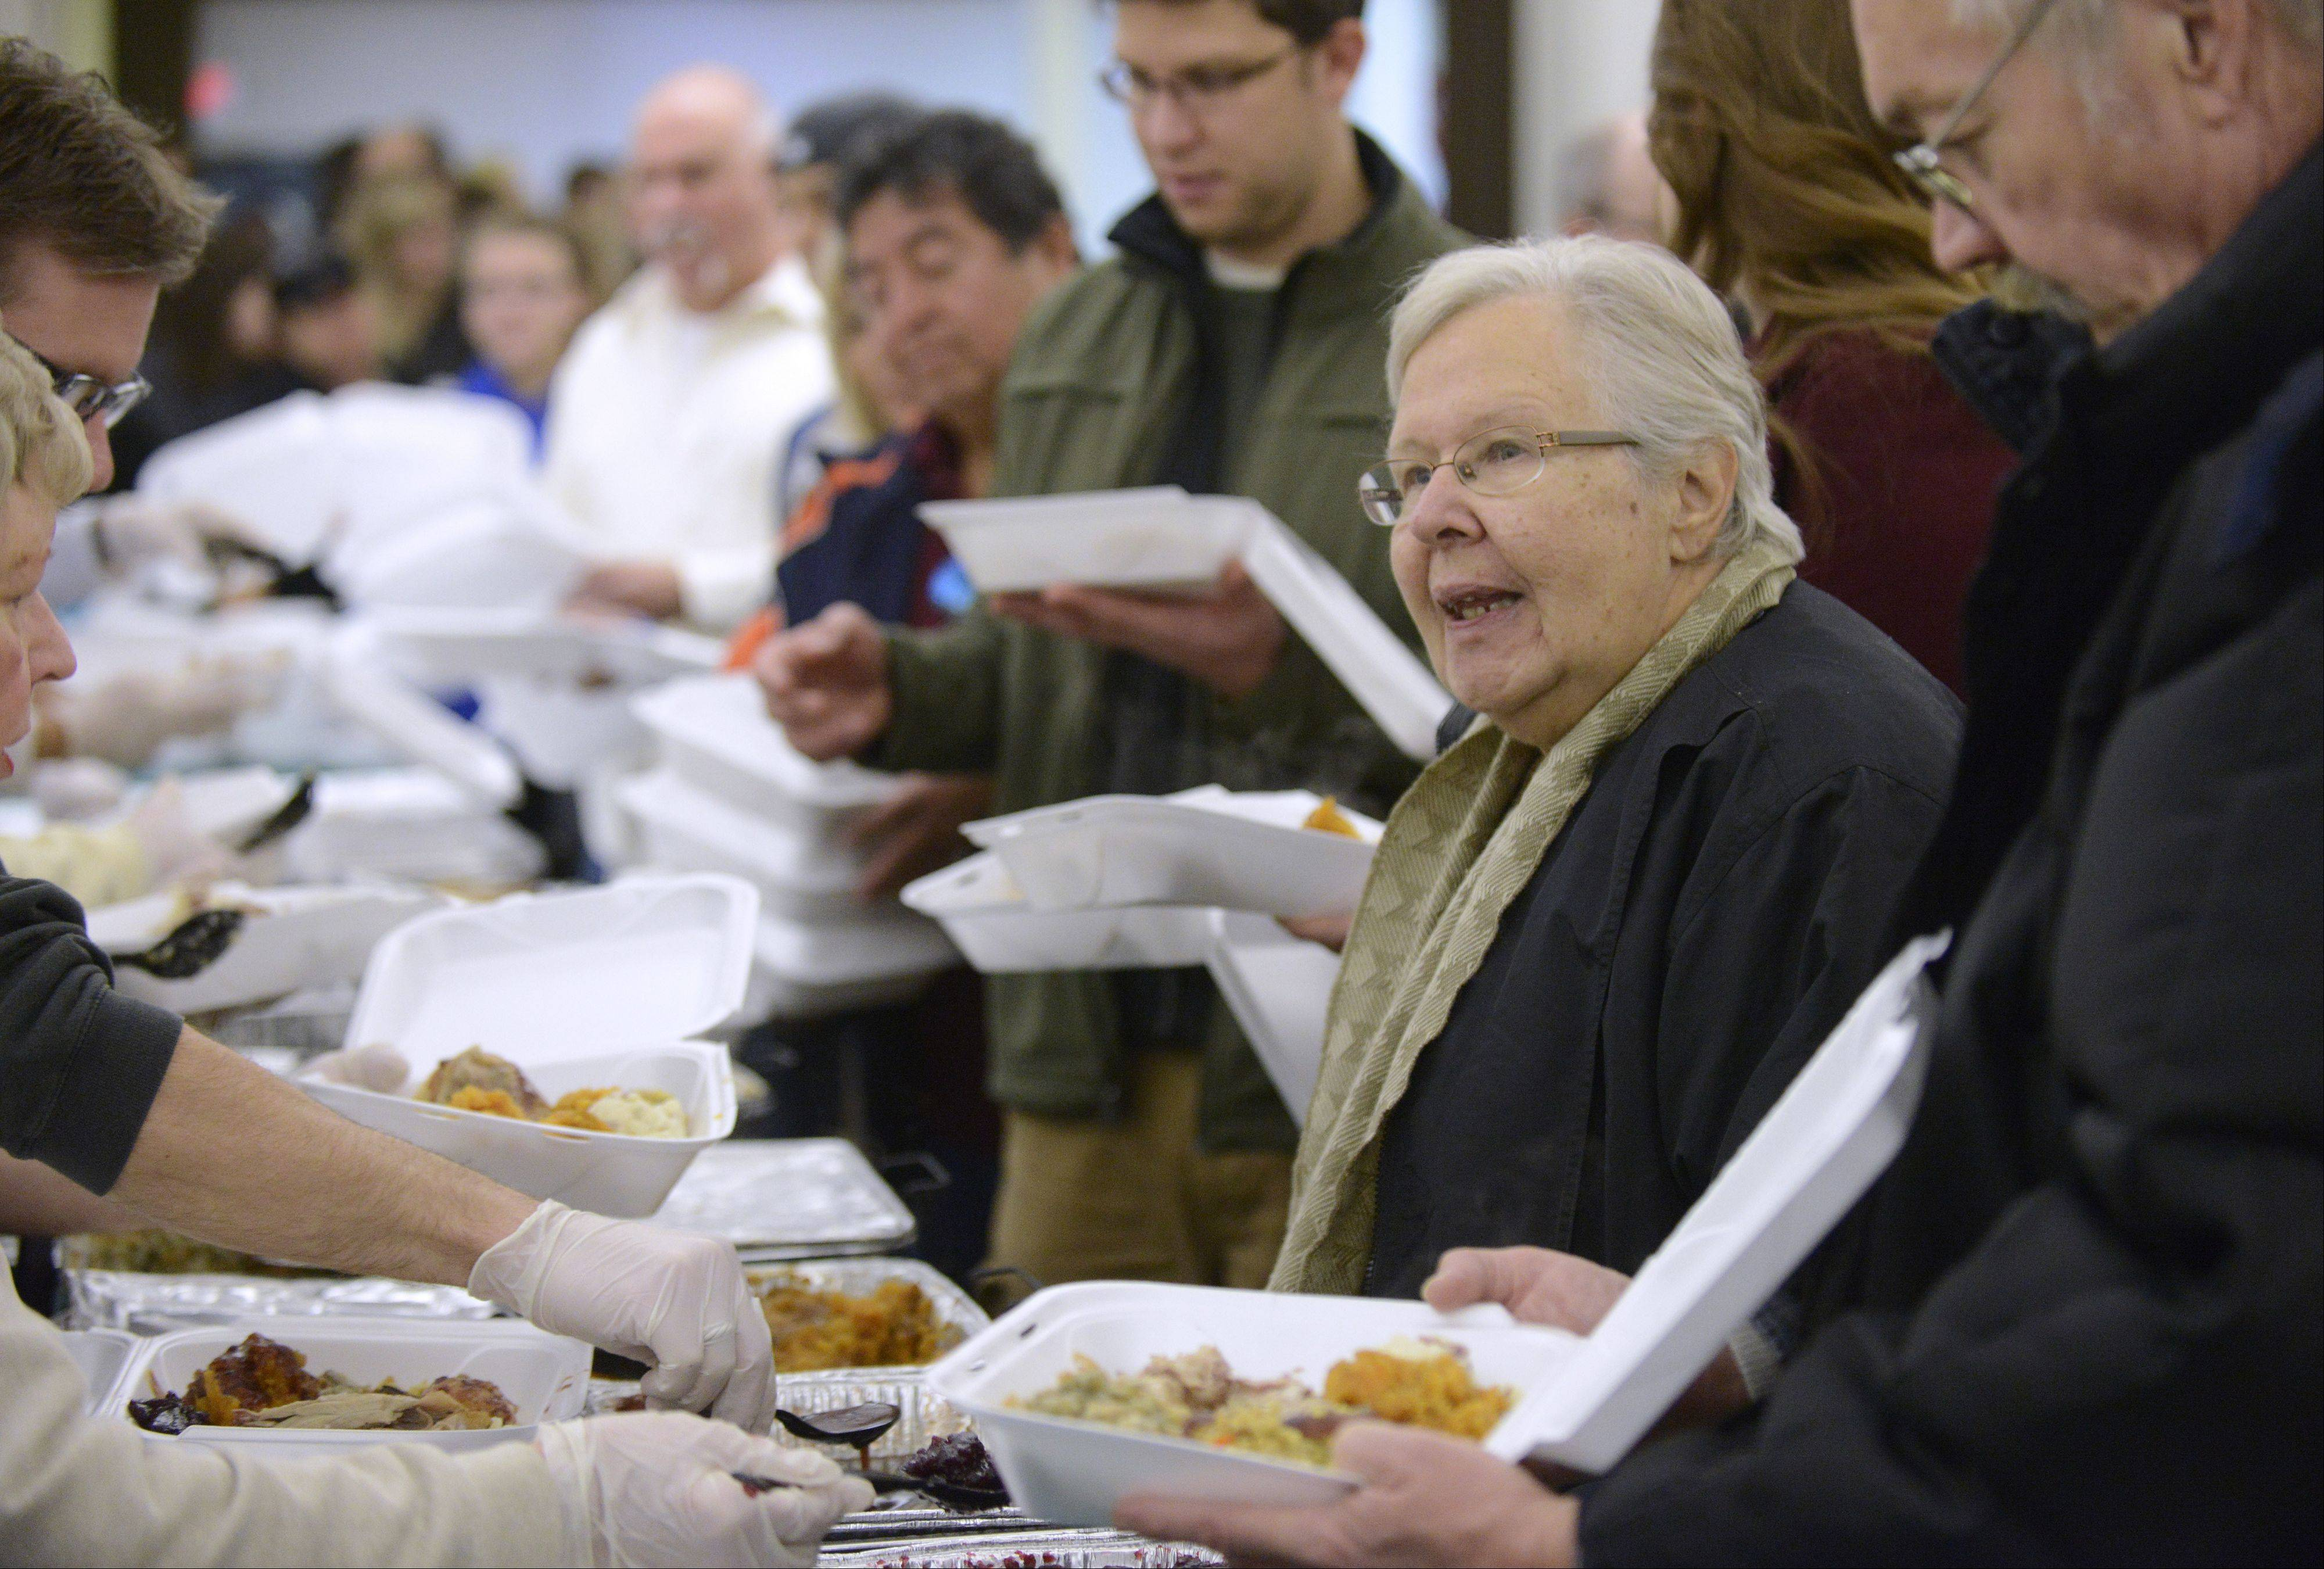 Elgin's Barb Roderick waits in line as turkey dinners are packaged for her at the Elgin Community Thanksgiving Dinner at the First United Methodist Church in Elgin on Thanksgiving. Roderick collected meals to deliver to neighbors.